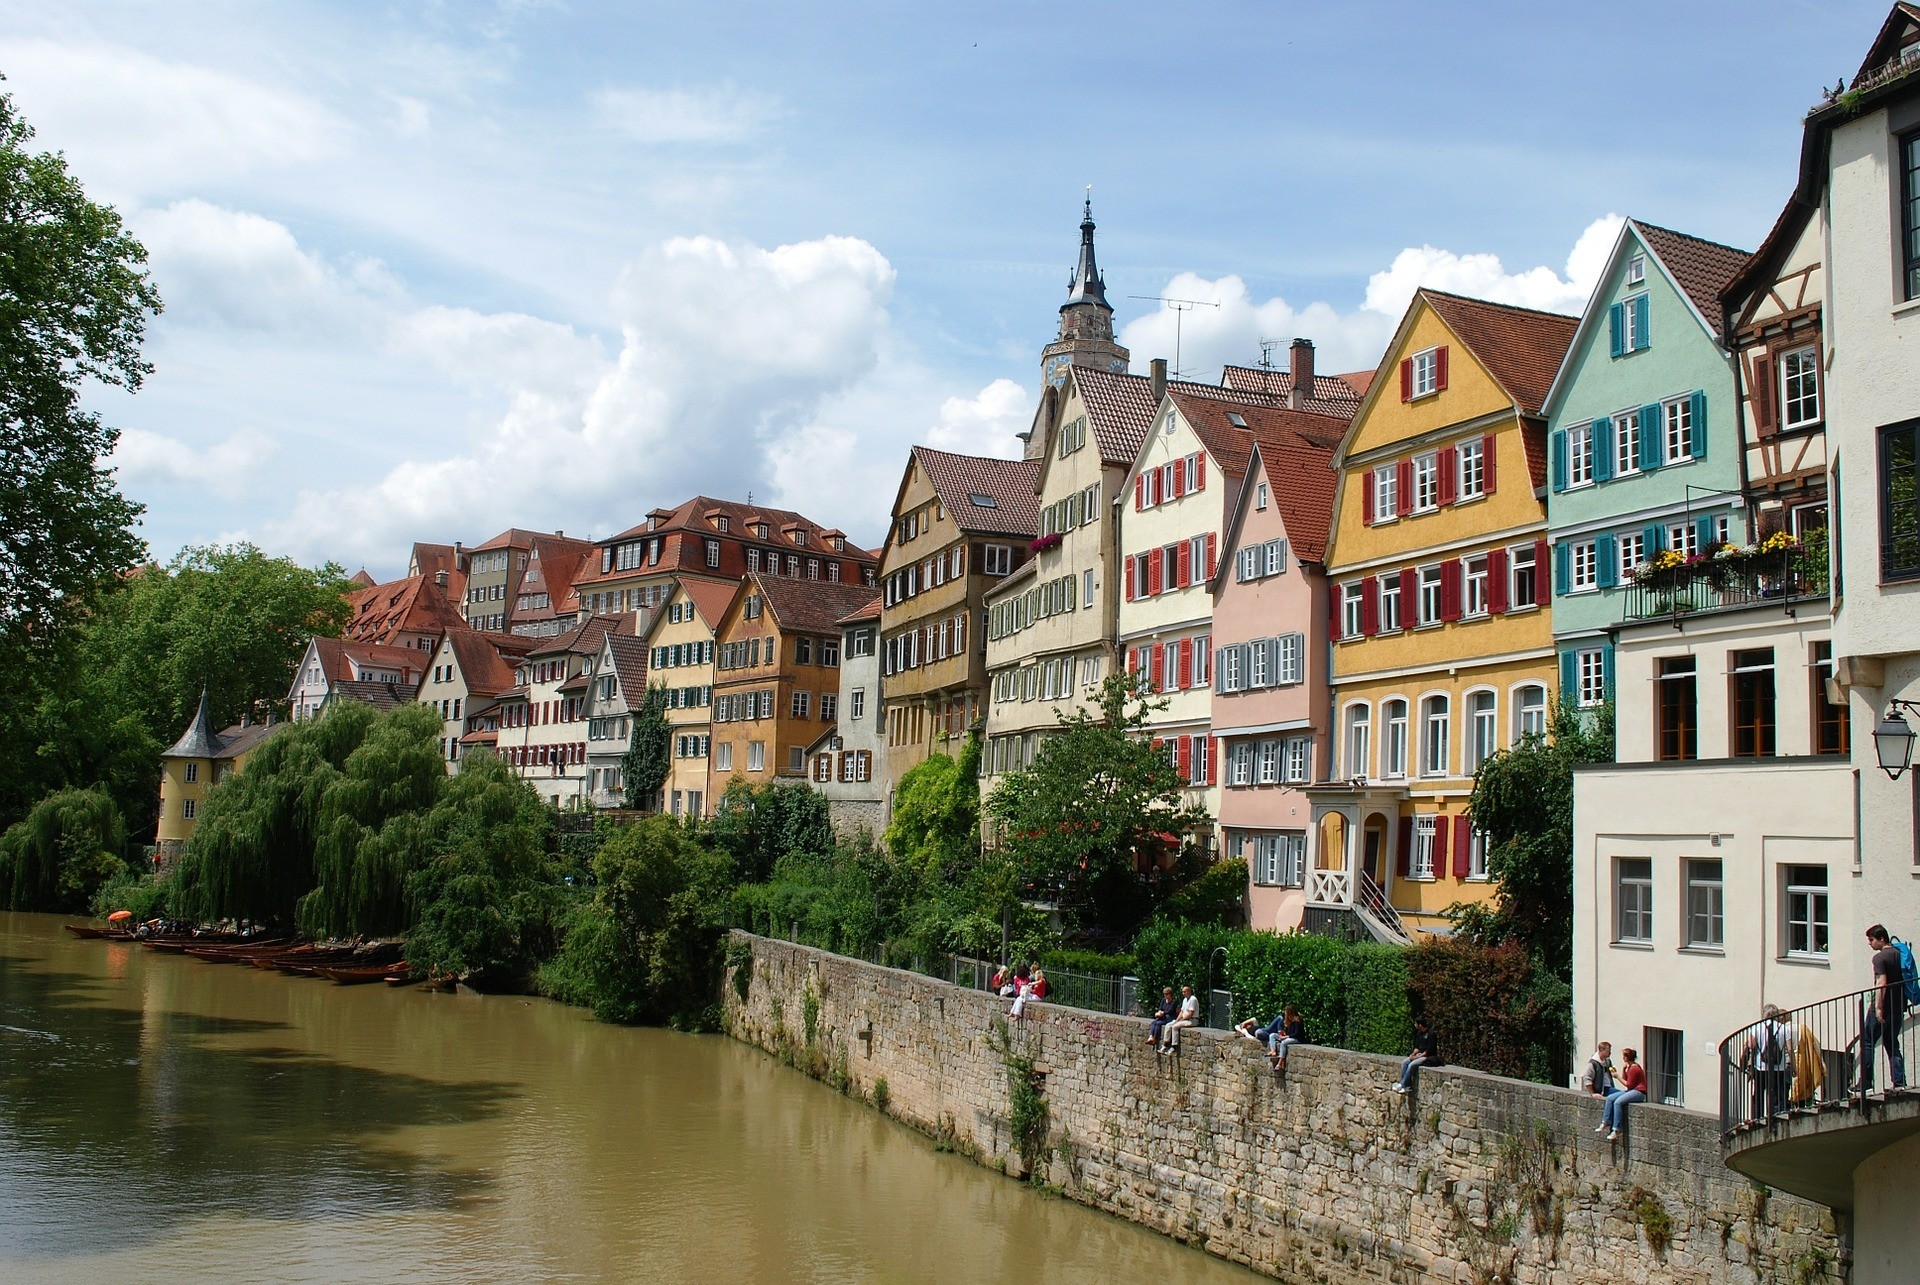 River Neckar in Tübingen, Germany Photto Gaertringen on Pixabay